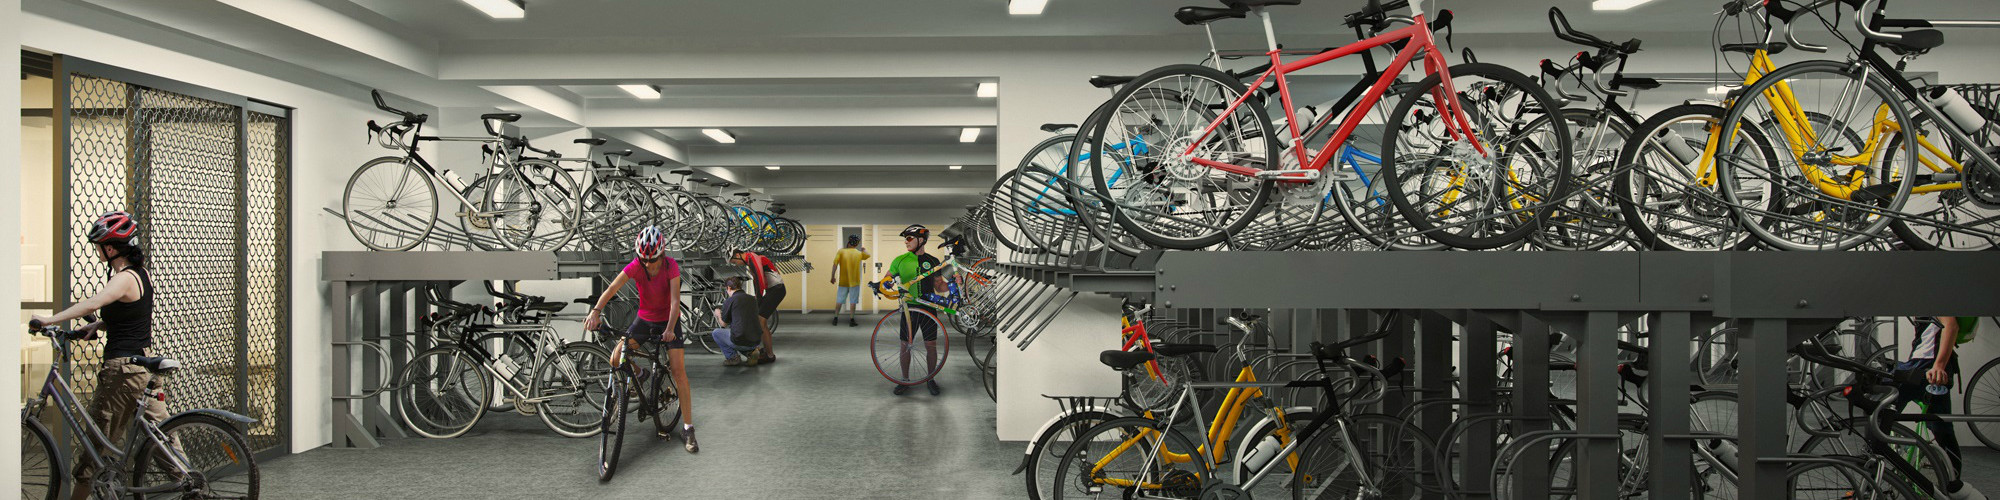 PropNex Local Project - Westwood Residences EC - Secured Covered Bike Garage (nickpohdivision.com)